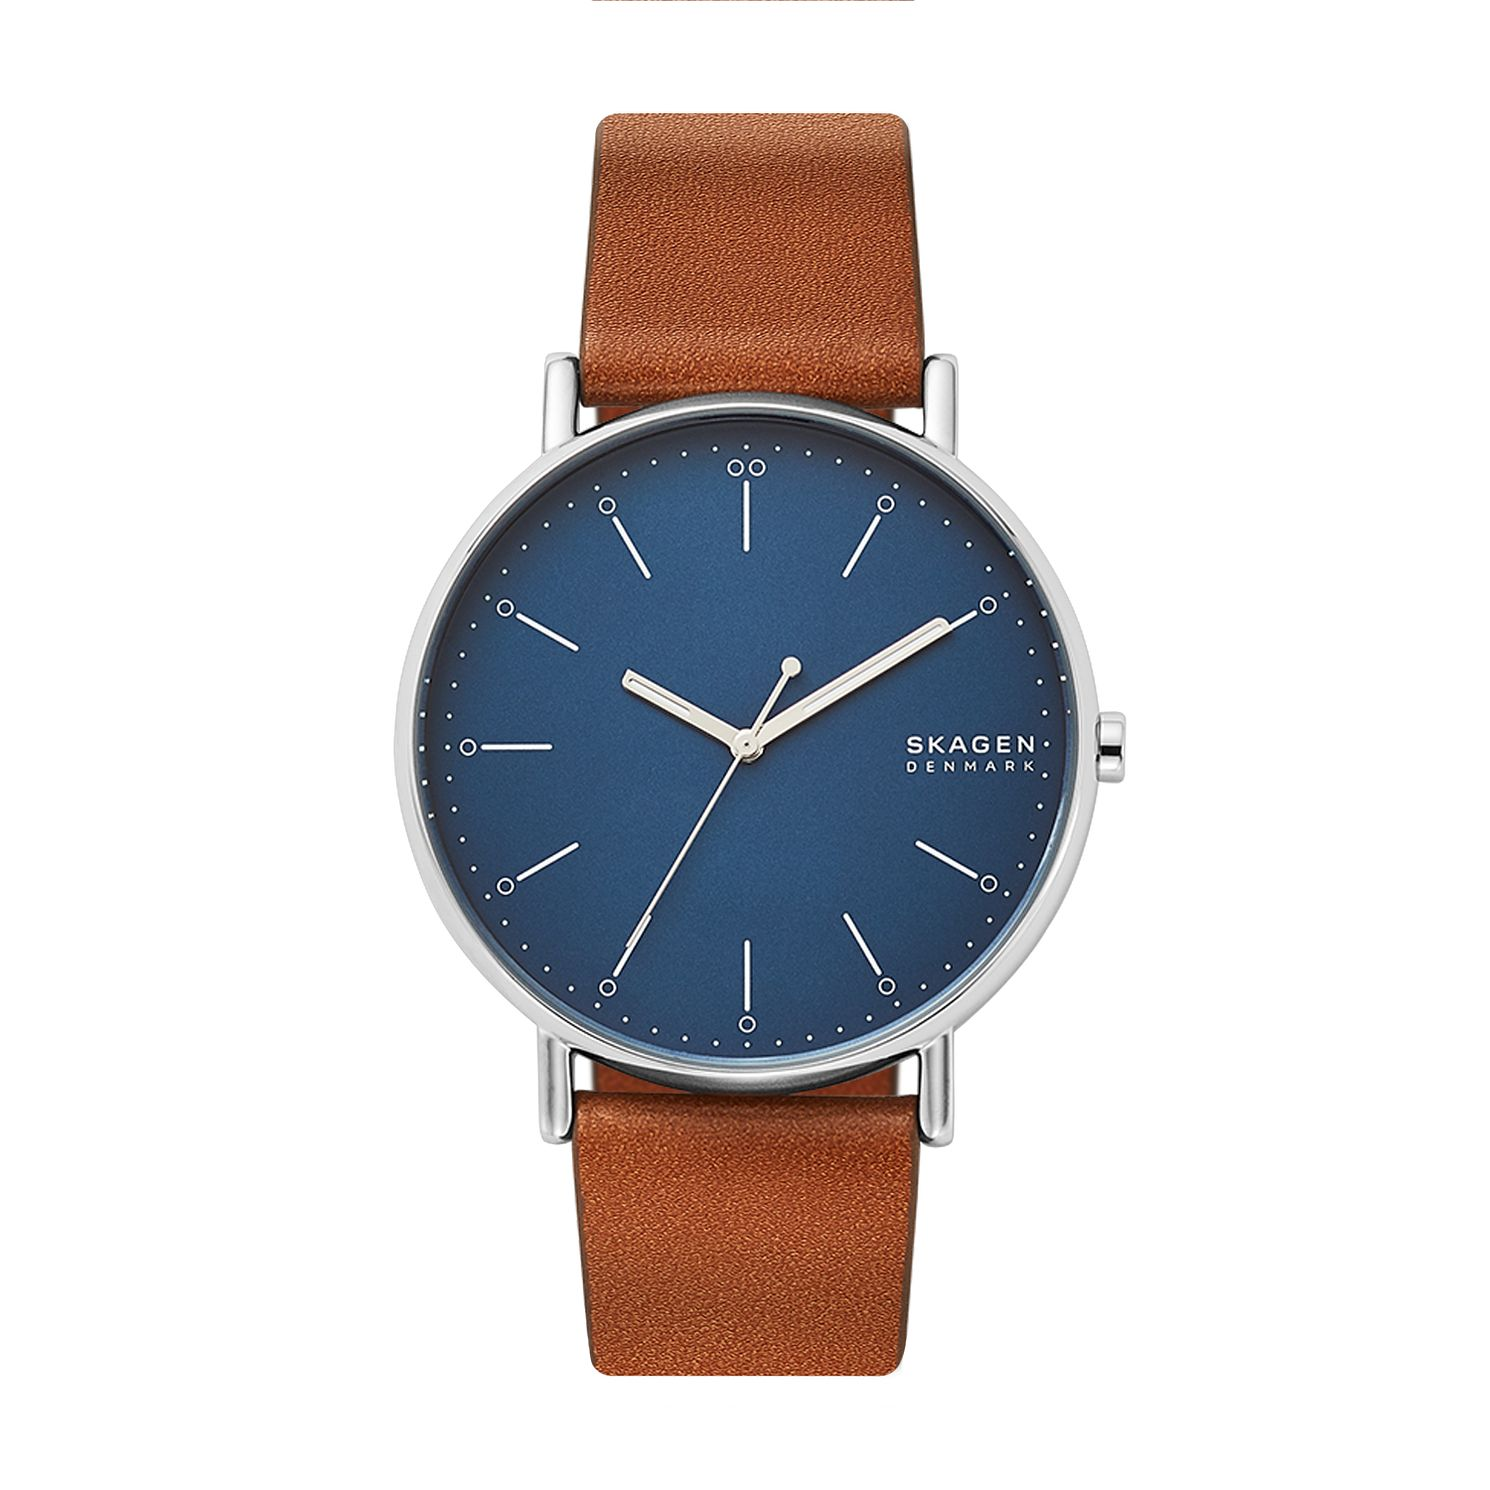 Skagen Signatur Men's Brown Leather Strap Watch - Product number 5326656